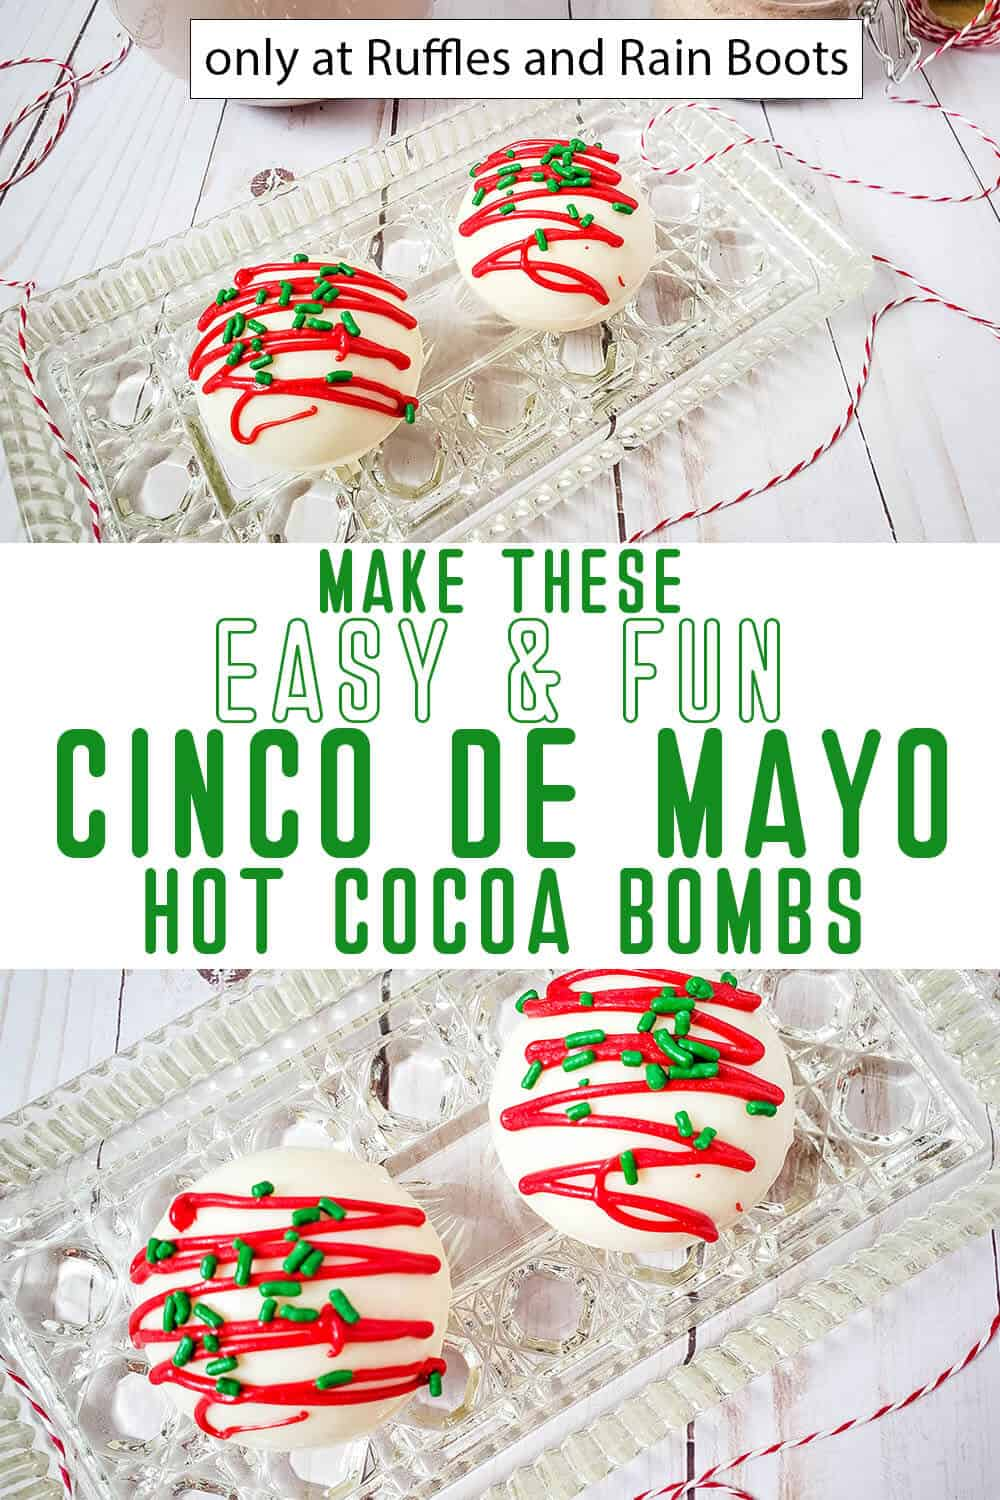 photo collage of cinco de mayo hot chocolate bombs with text which reads make these easy & fun cinco de mayo hot cocoa bombs